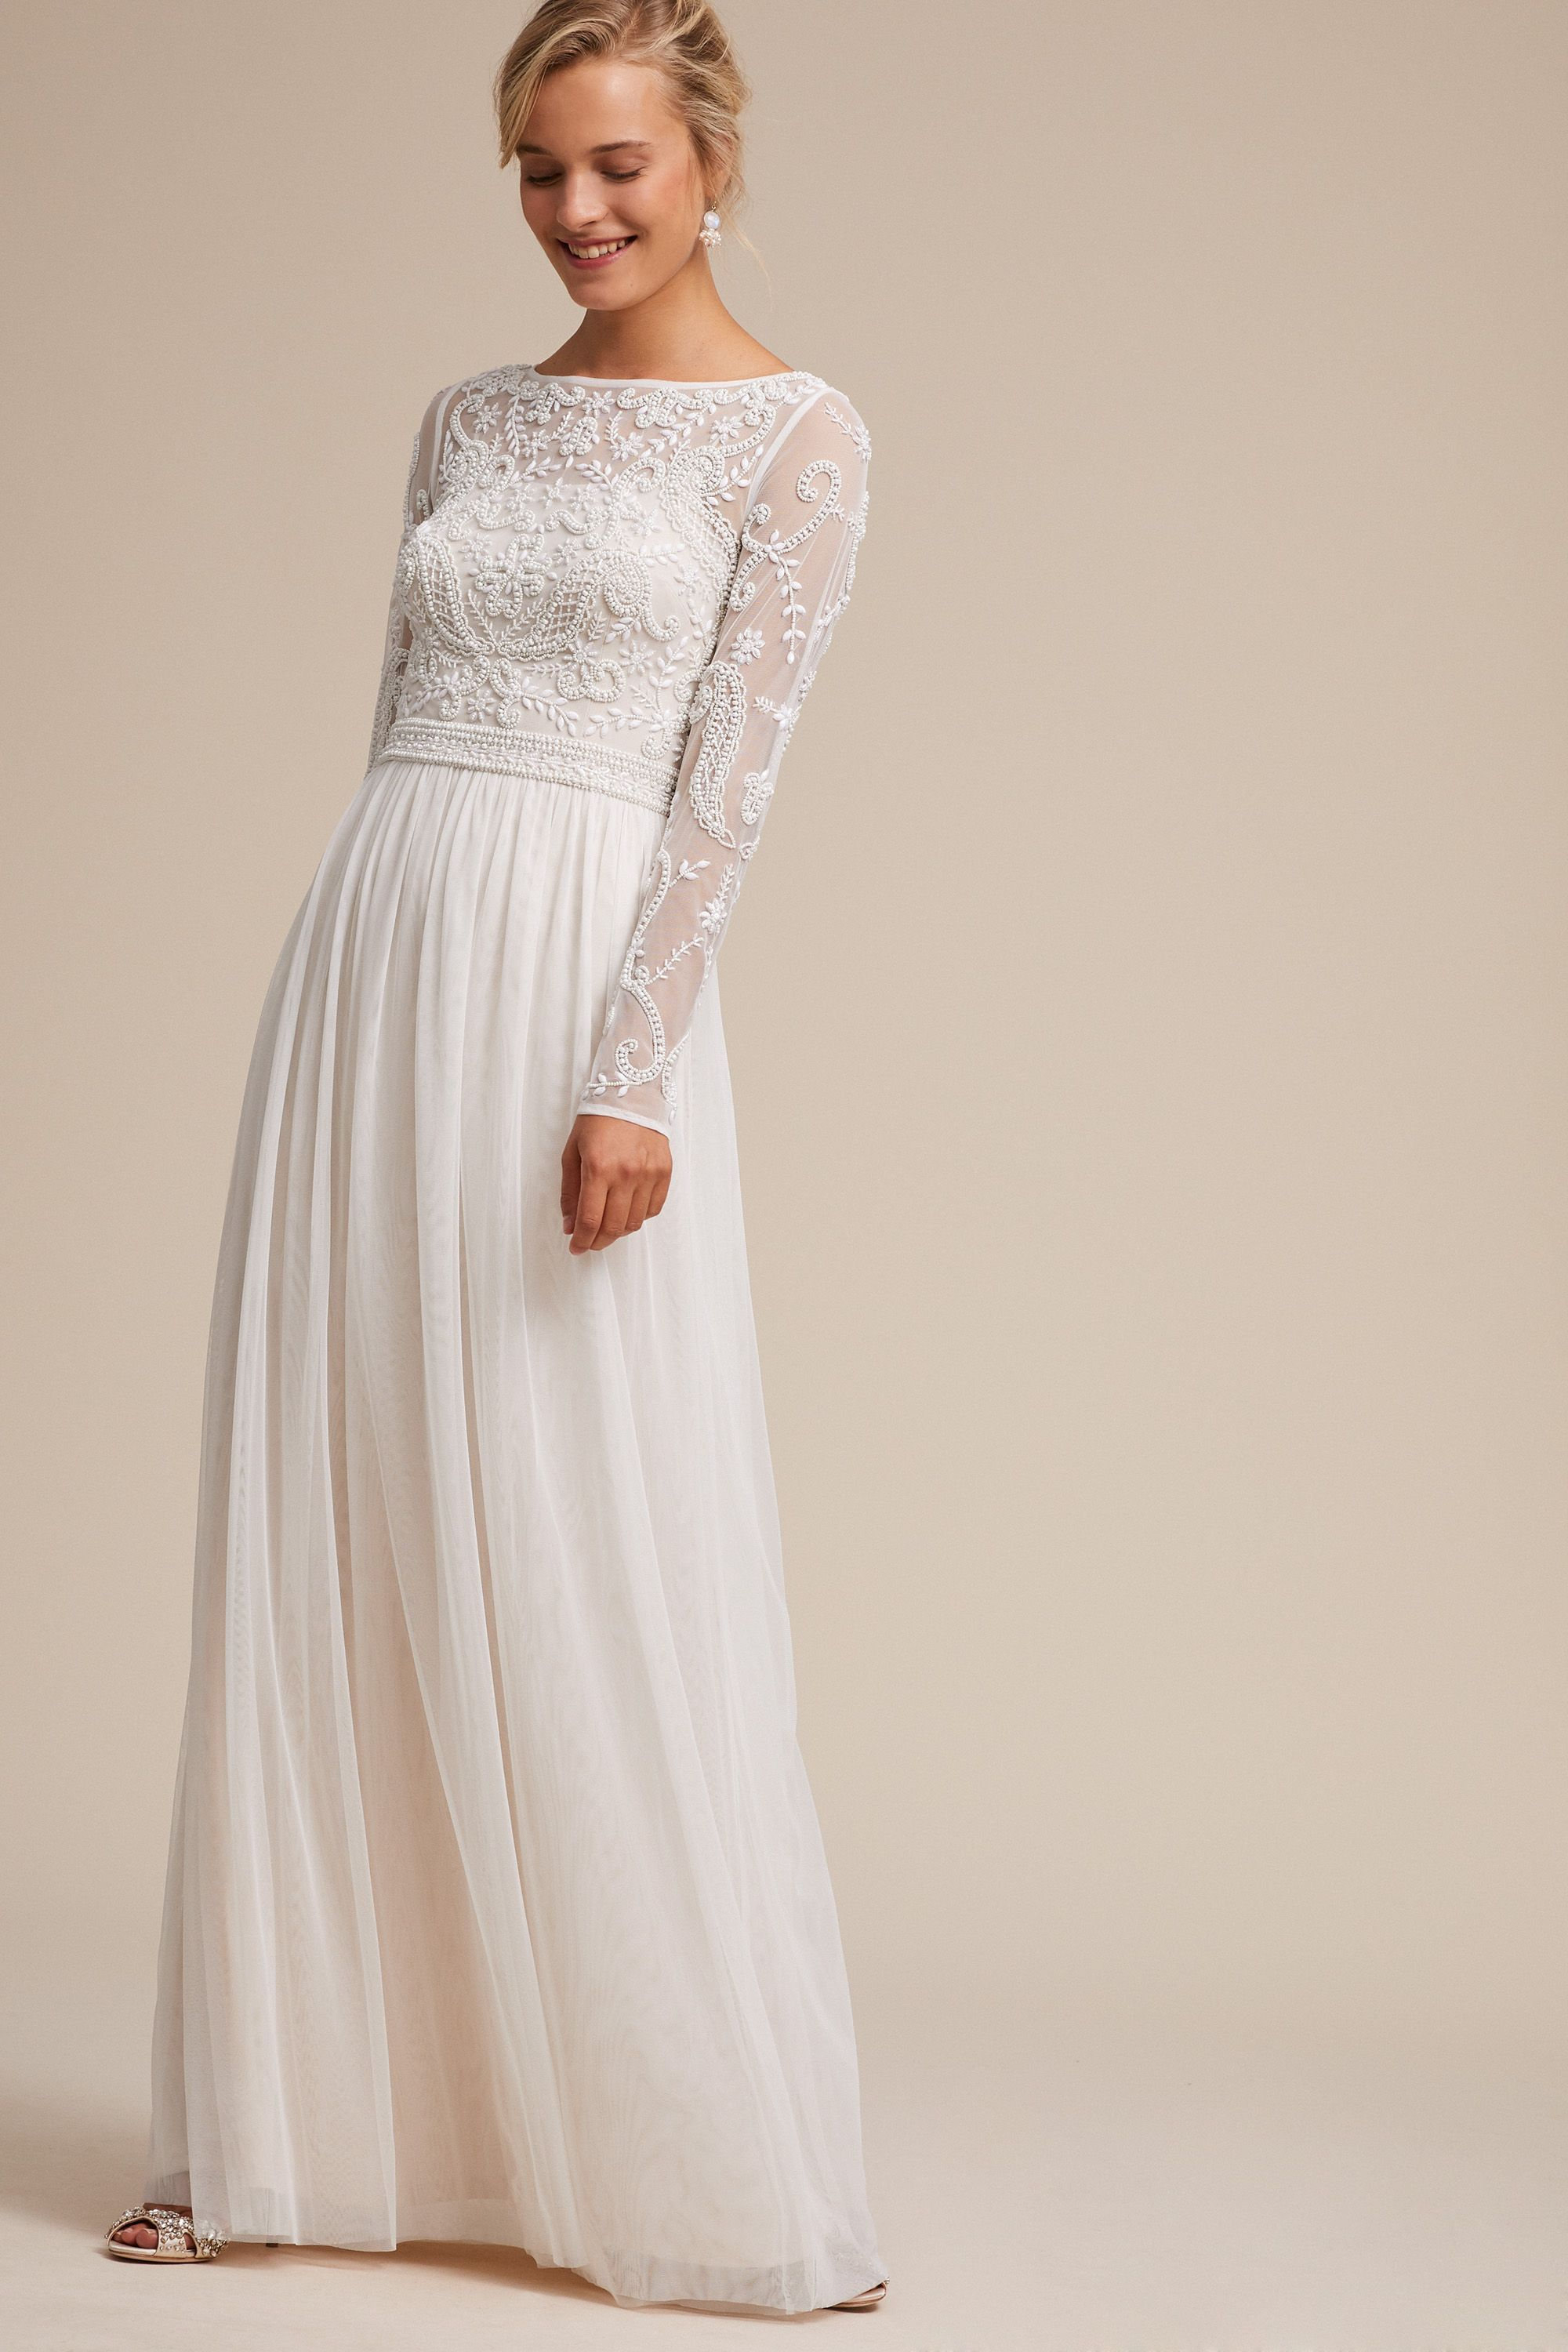 e66708a13f797 BHLDN's Sinclair Dress in Ivory/champagne in 2019 | Hell Yeah ...